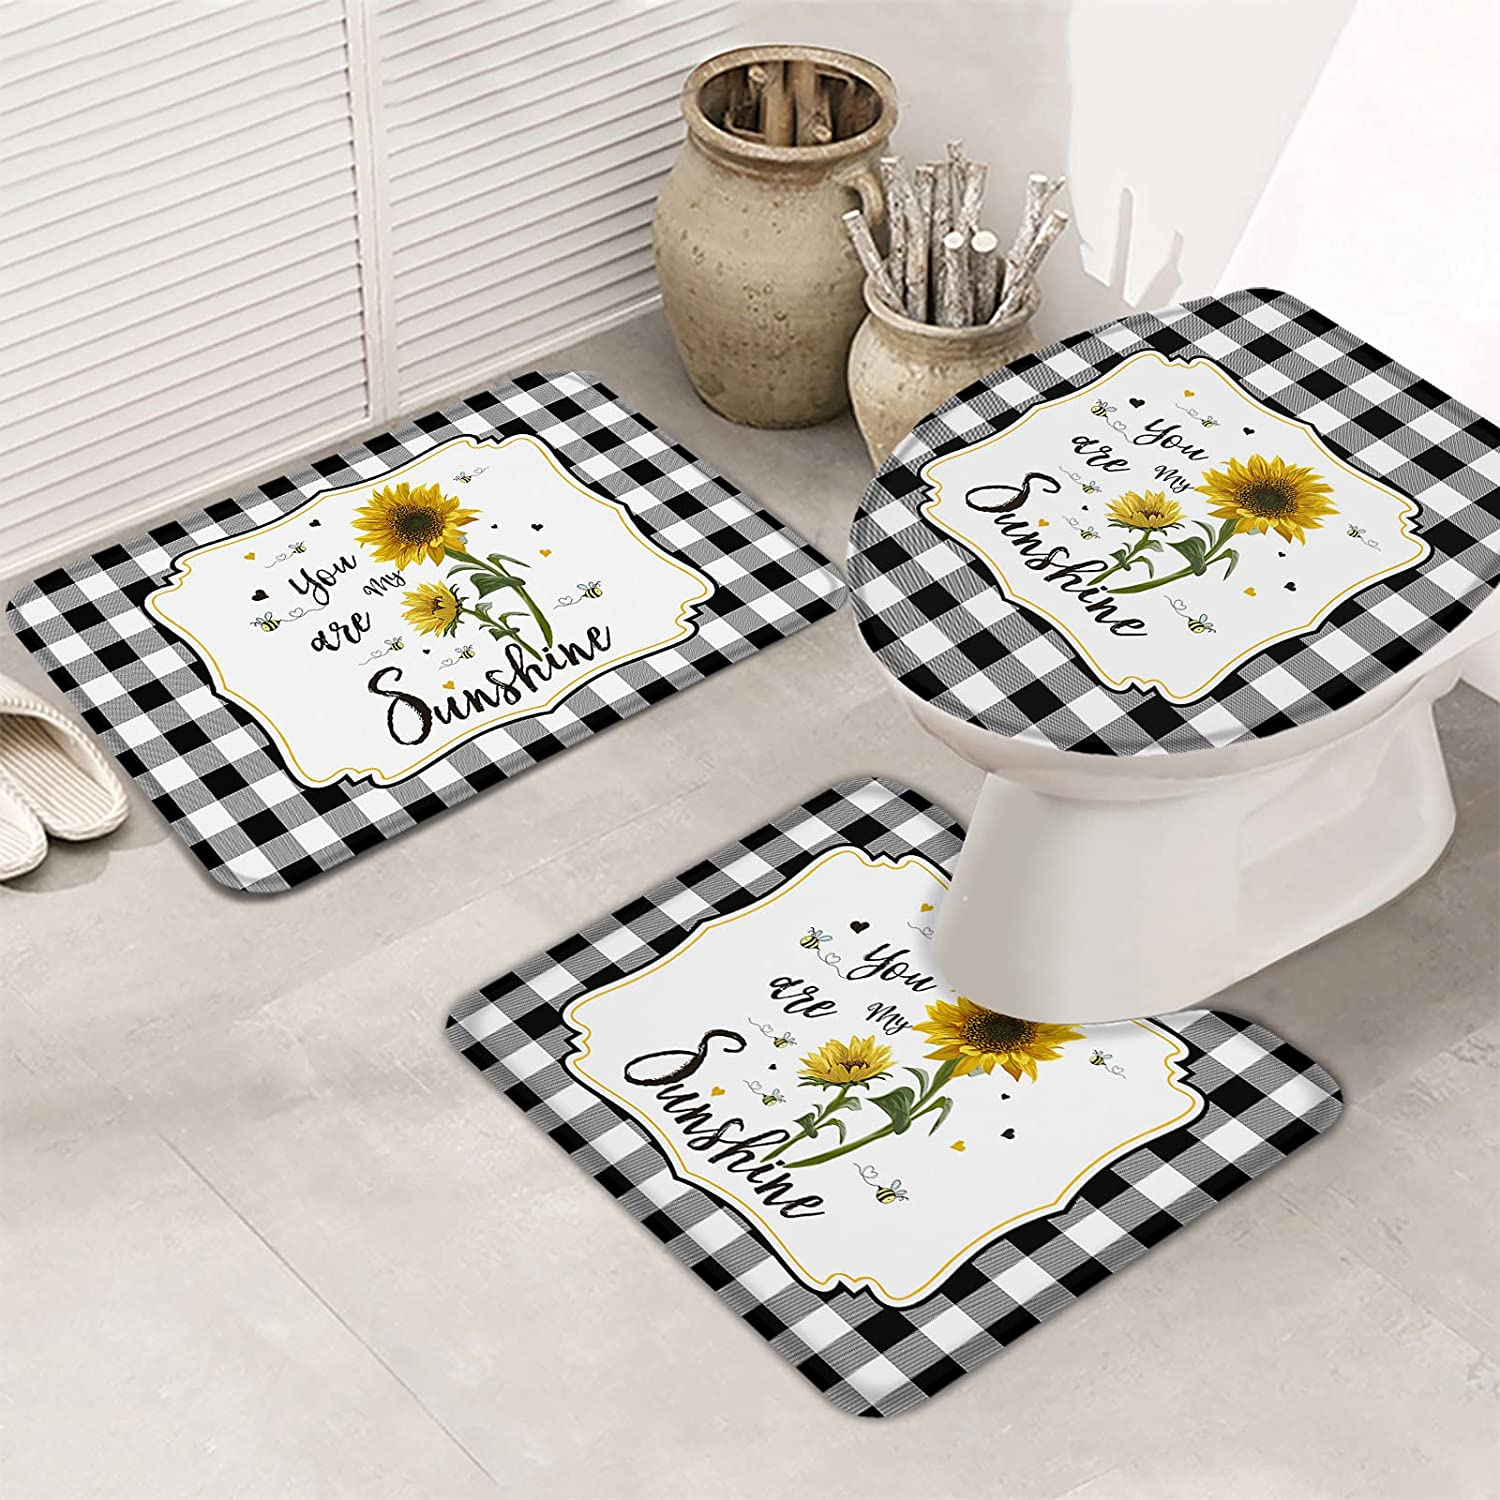 Fancyine 3 Max 90% OFF Pieces Bath Rugs Sets Blossom and Sunflowers Bee Farm Department store